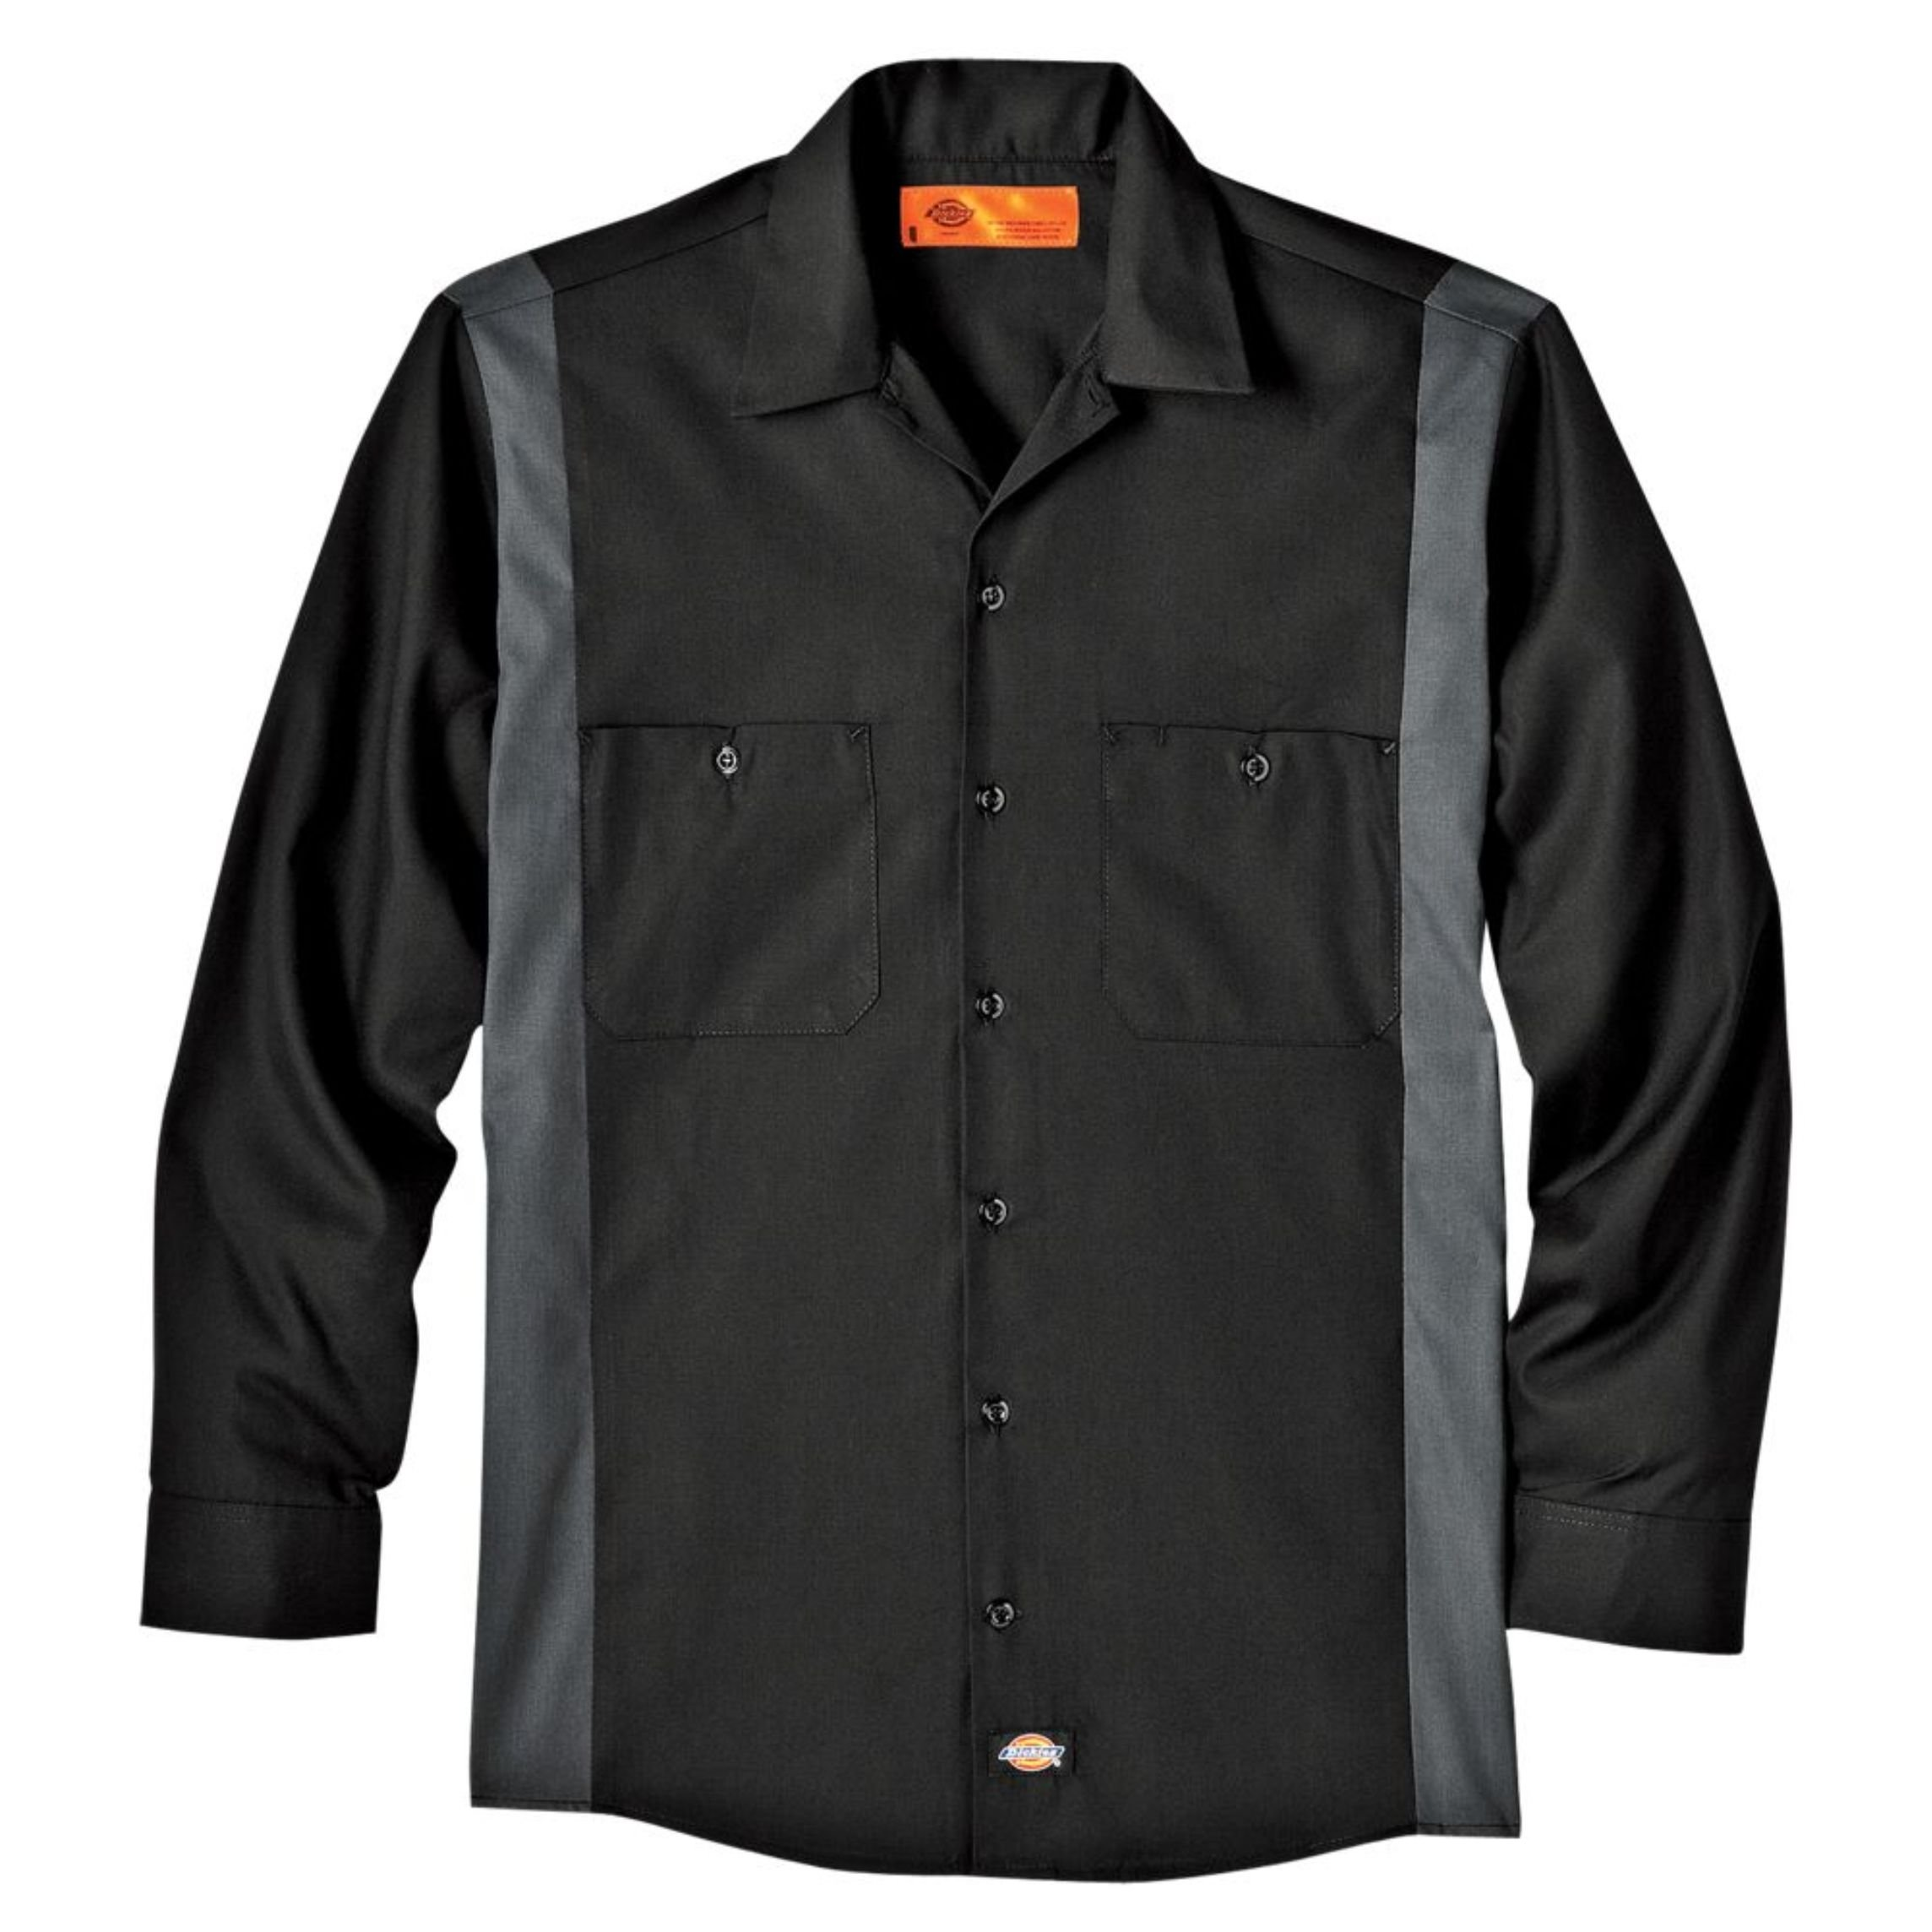 Dickies Occupational Workwear LL524BKCH 3XL Polyester/ Cotton Men's Long Sleeve Industrial Color Block Shirt, 3X-Large, Black/ Dark Charcoal by Dickies Occupational Workwear